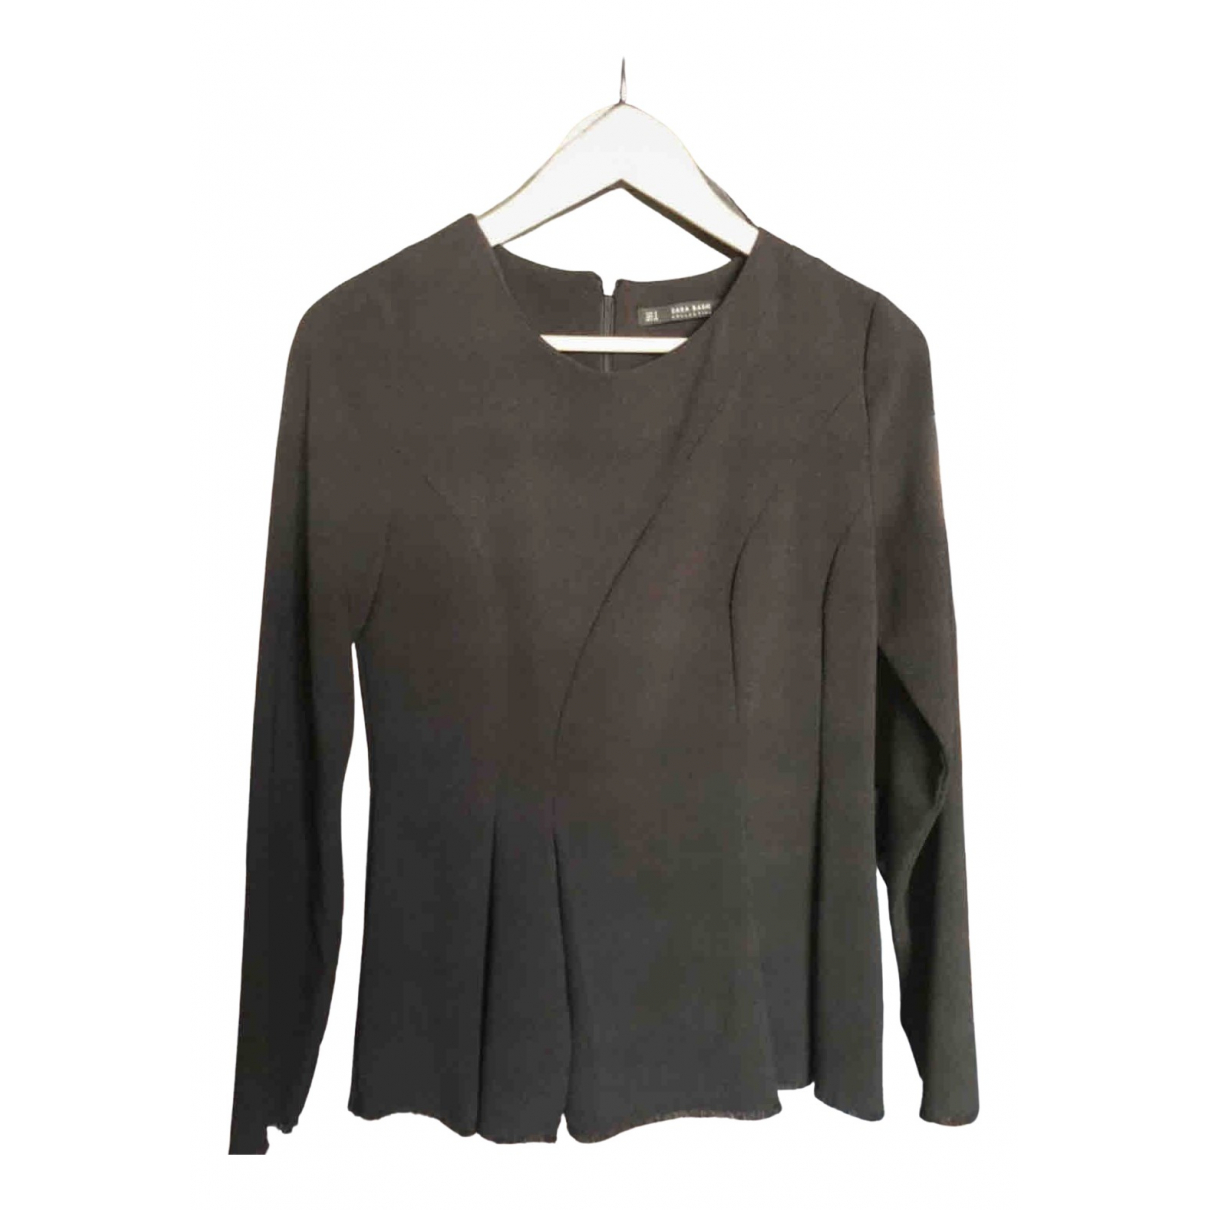 Zara \N Black  top for Women 36 FR